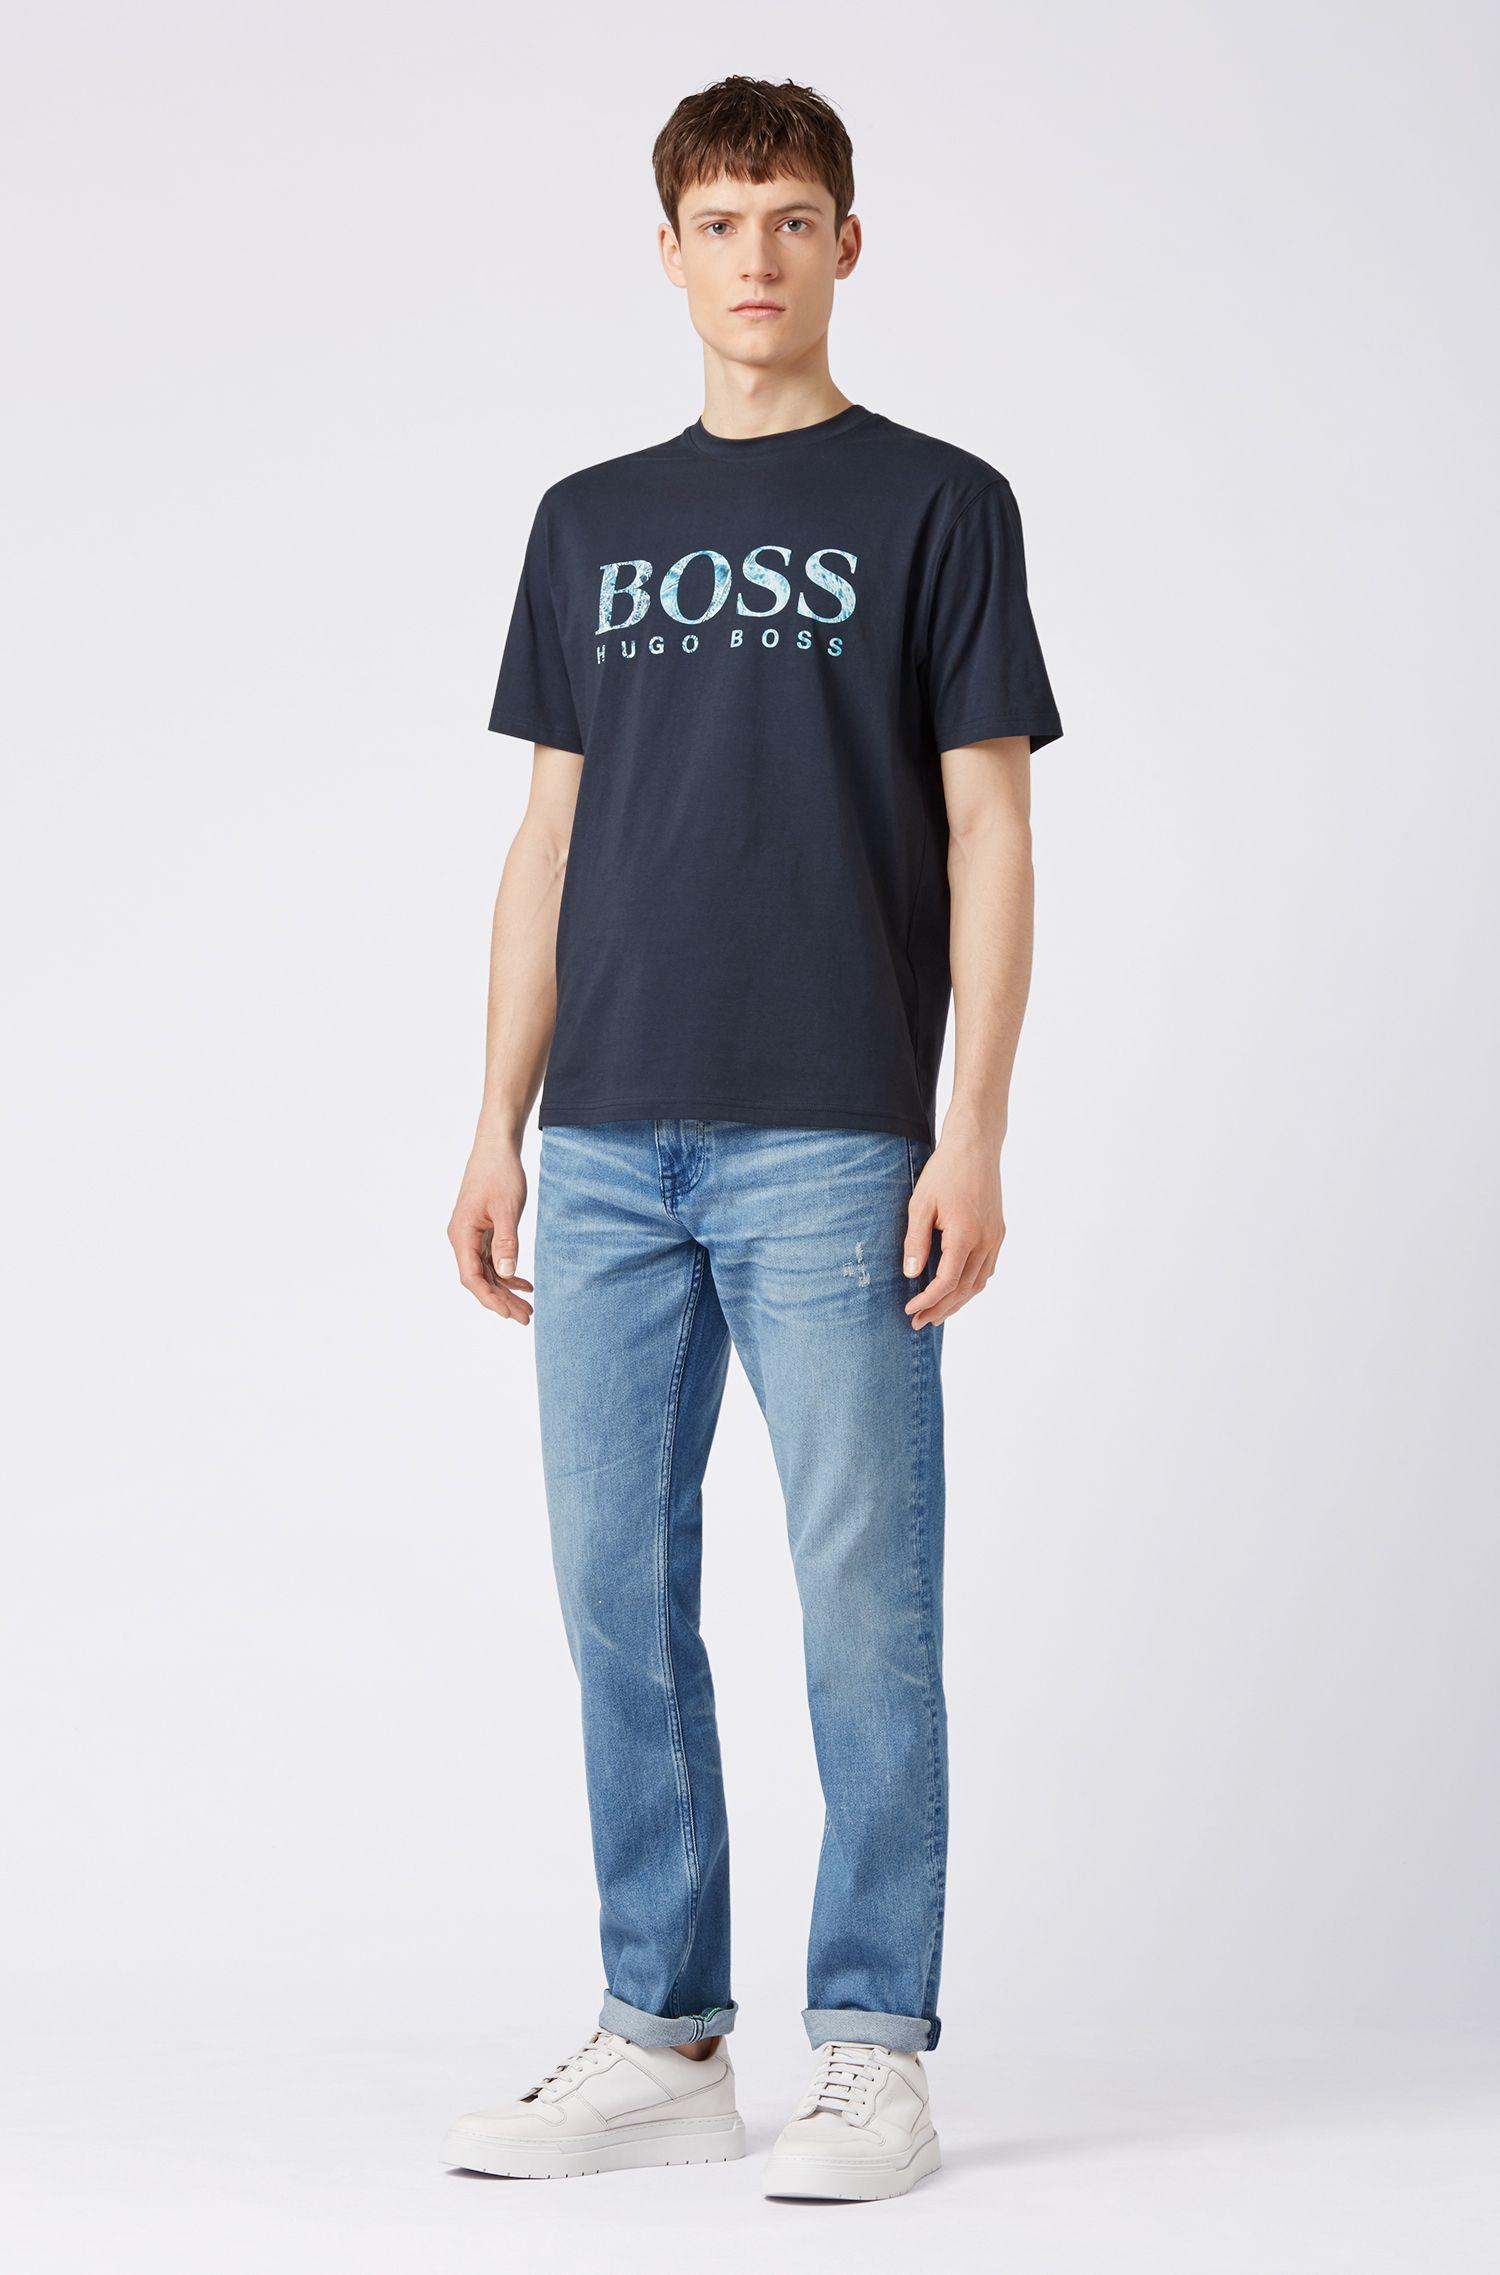 836d28e16 BOSS - Blue Relaxed-fit Jersey T-shirt With Screen-printed Logo for. View  fullscreen